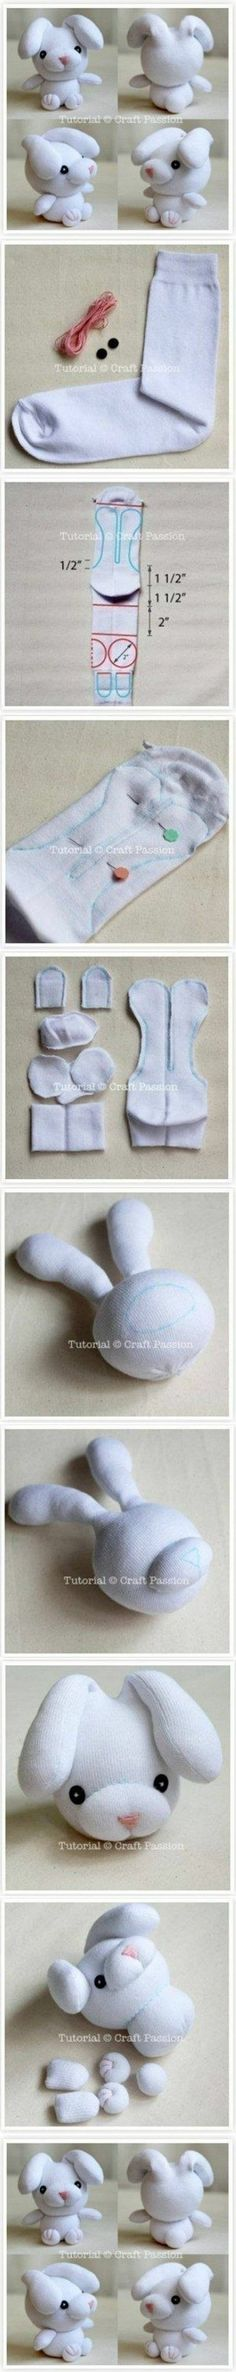 How to make Sew Sock Bunny step by step DIY tutorial instructions 400×4022 How to make Sew Sock Bunny step by step DIY tutorial instructions… @ joycotton